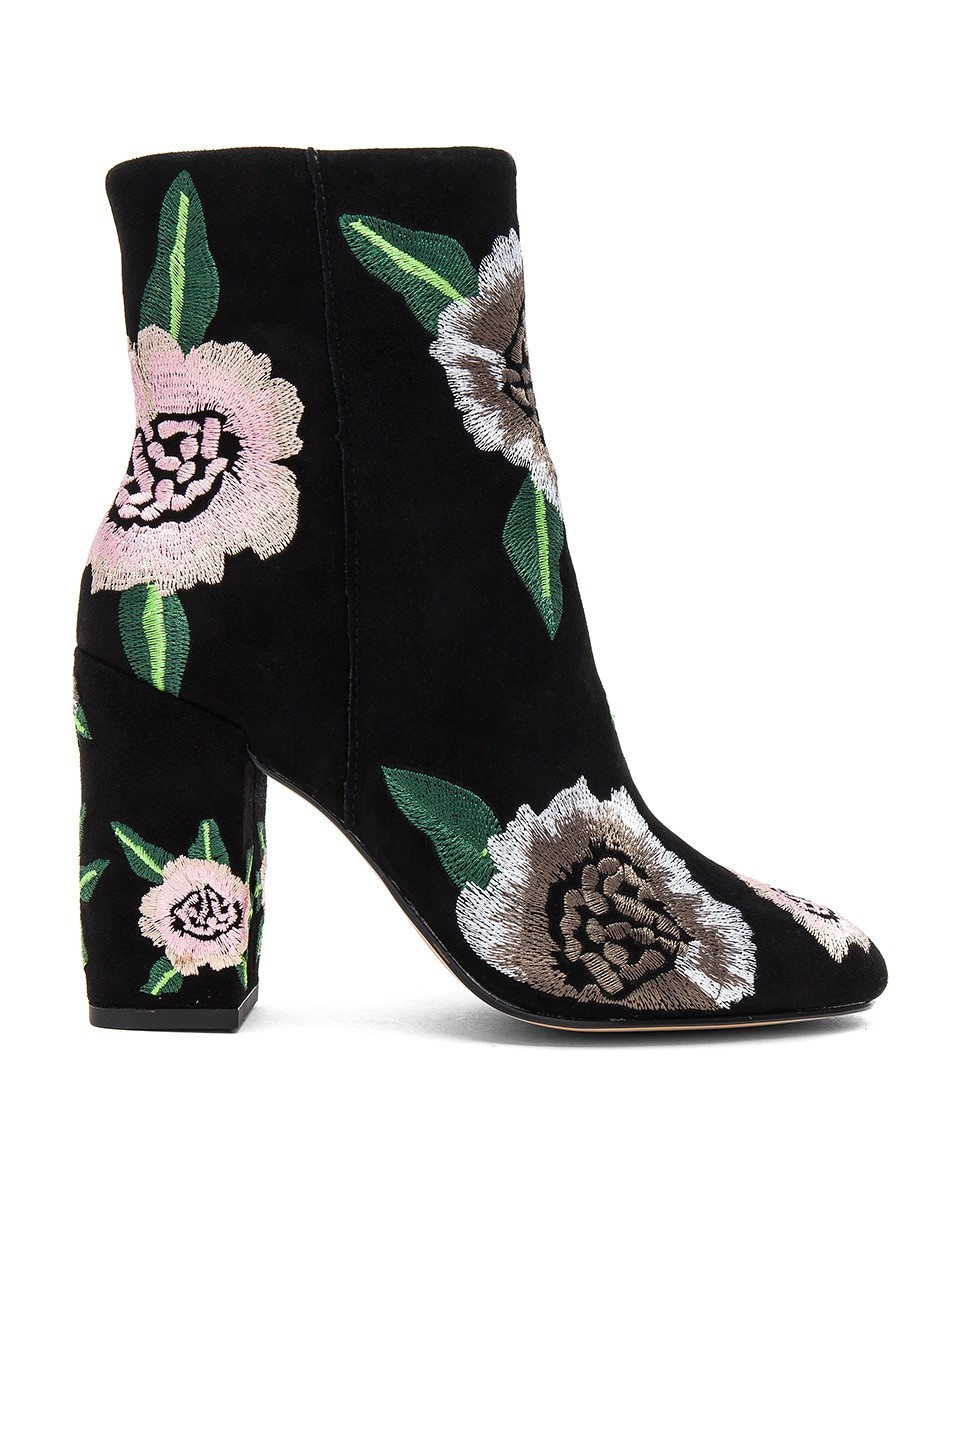 Rebecca Minkoff Bryce Embroidered Bootie in Black & Floral Kid Suede